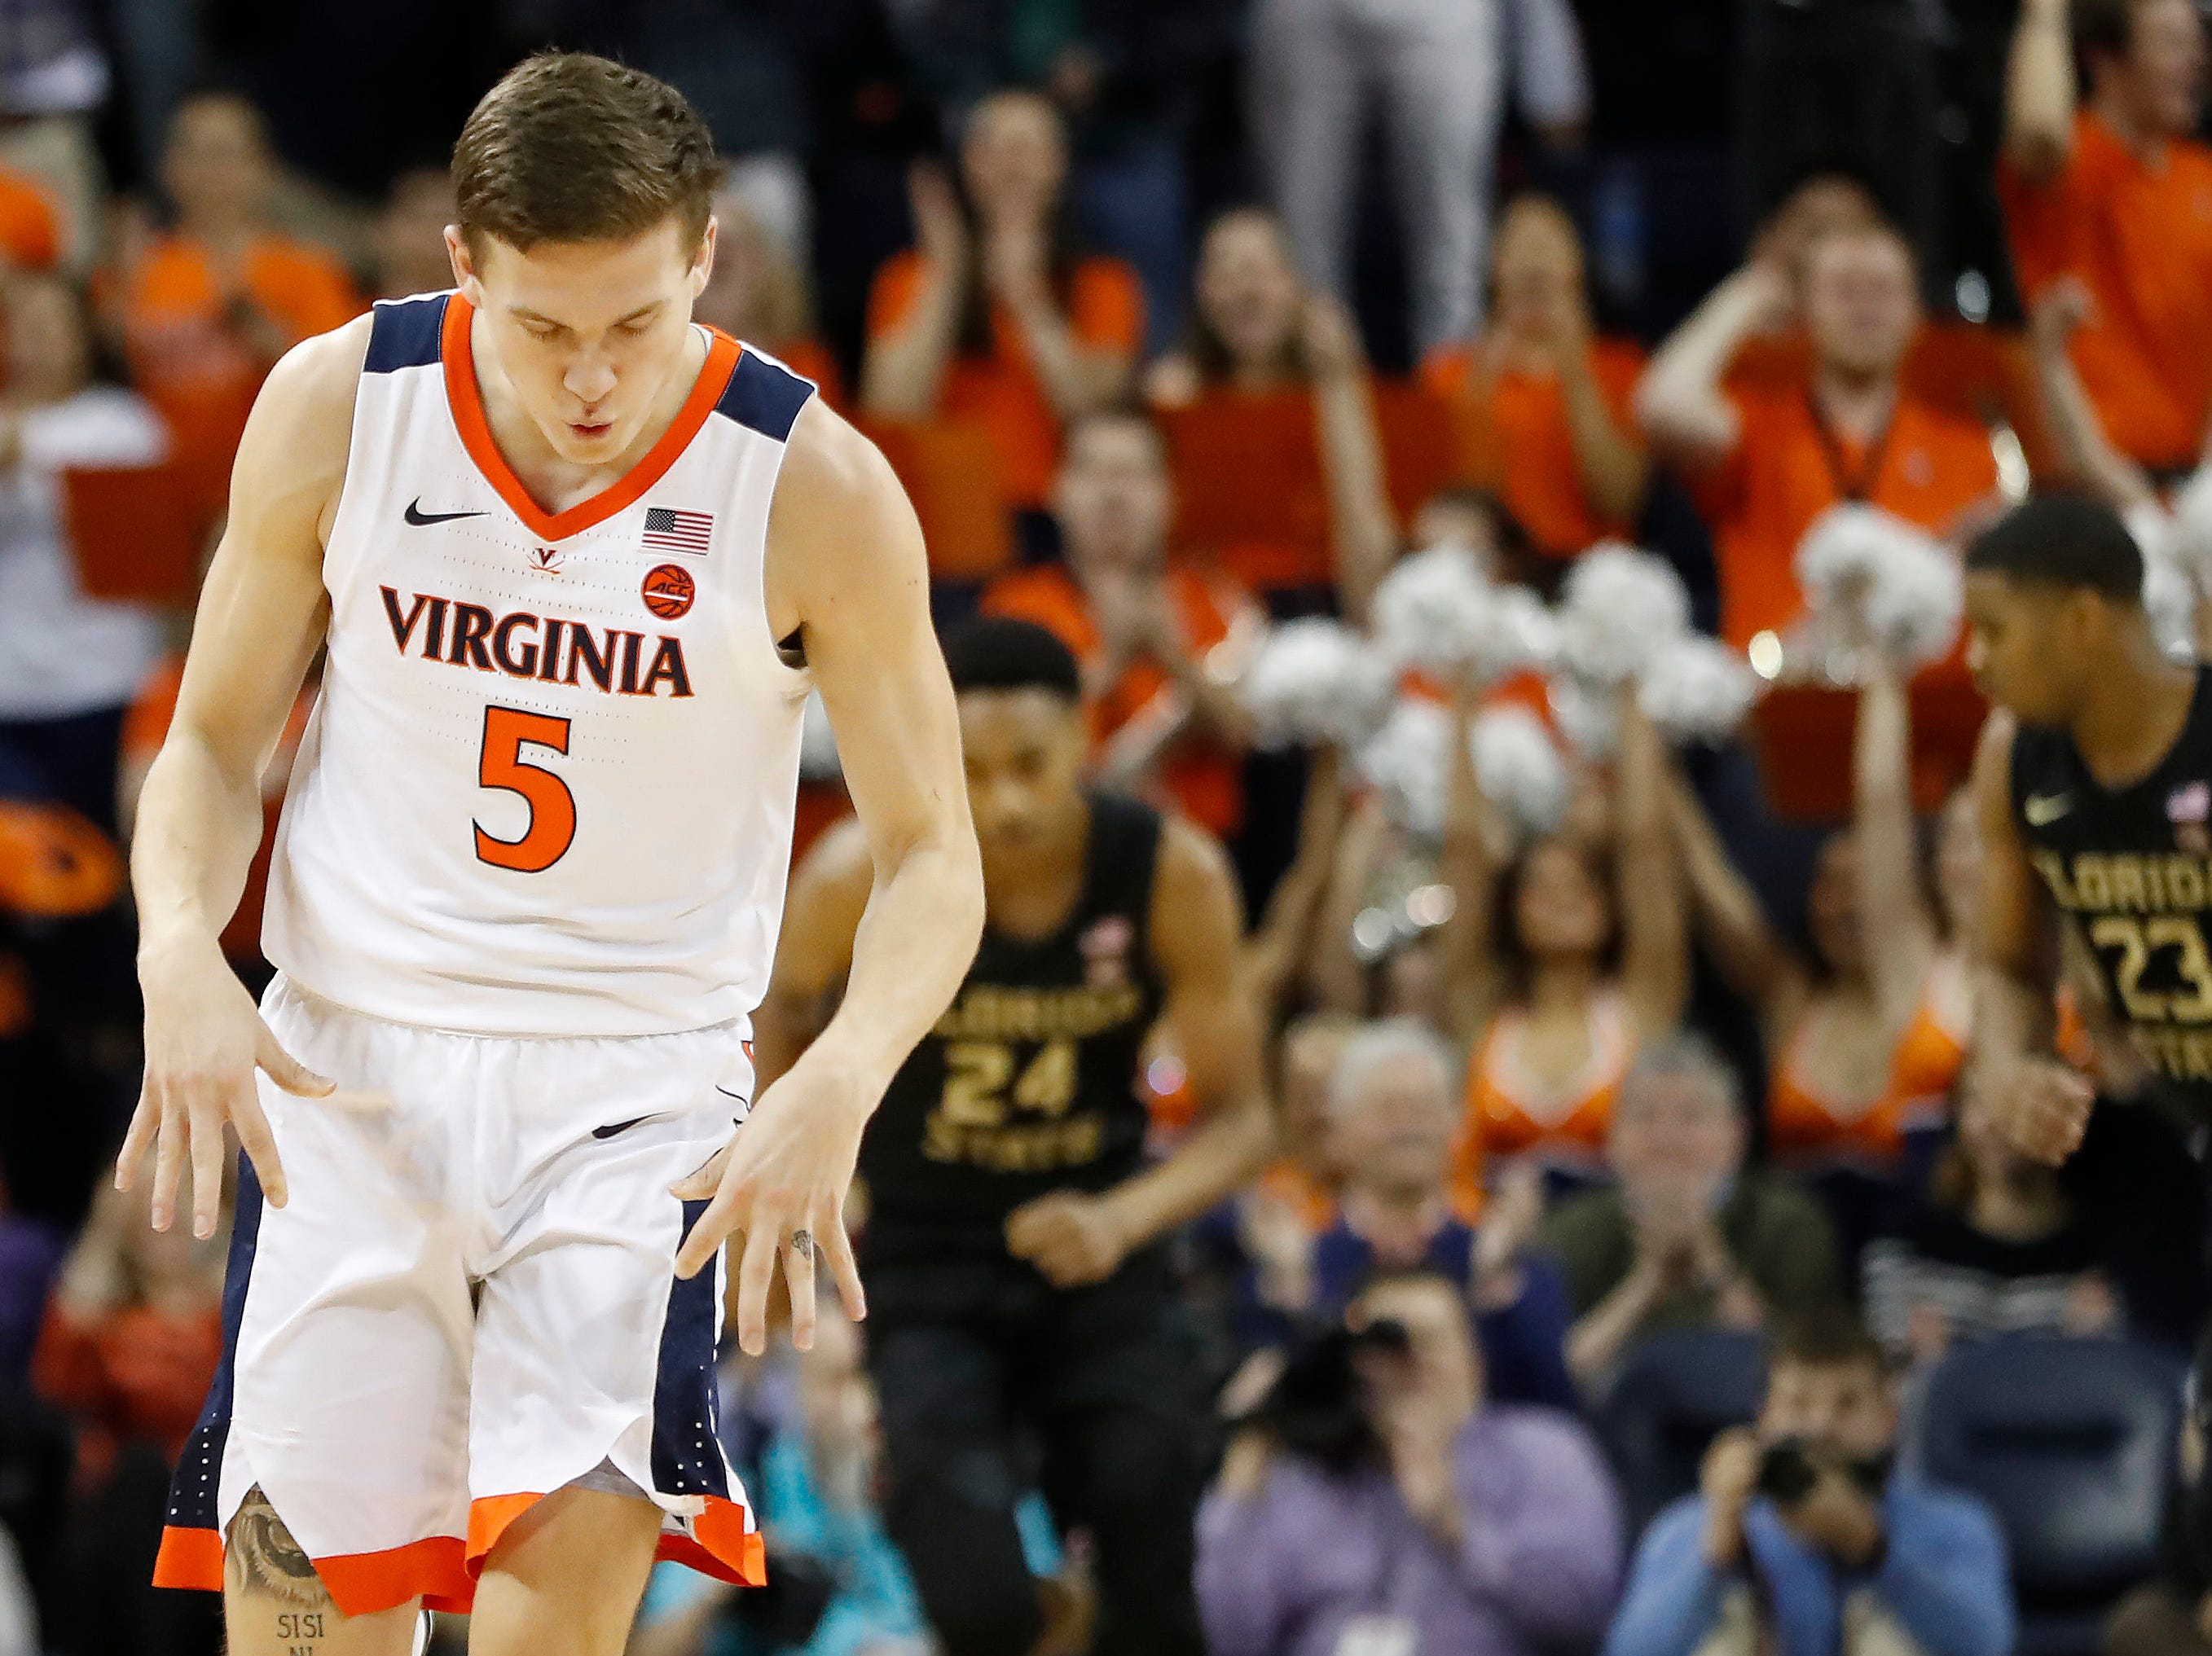 Jan 5, 2019; Charlottesville, VA, USA; Virginia Cavaliers guard Kyle Guy (5) gestures after making a three-point field goal against the Florida State Seminoles in the first half at John Paul Jones Arena. Mandatory Credit: Geoff Burke-USA TODAY Sports